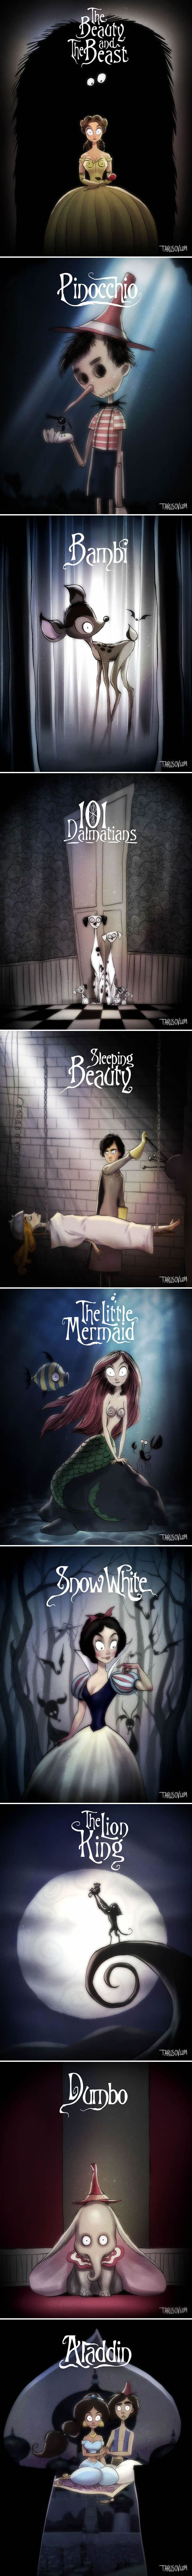 If Tim Burton Directed Disney Movies (By Andrew Tarusov) - 9GAG